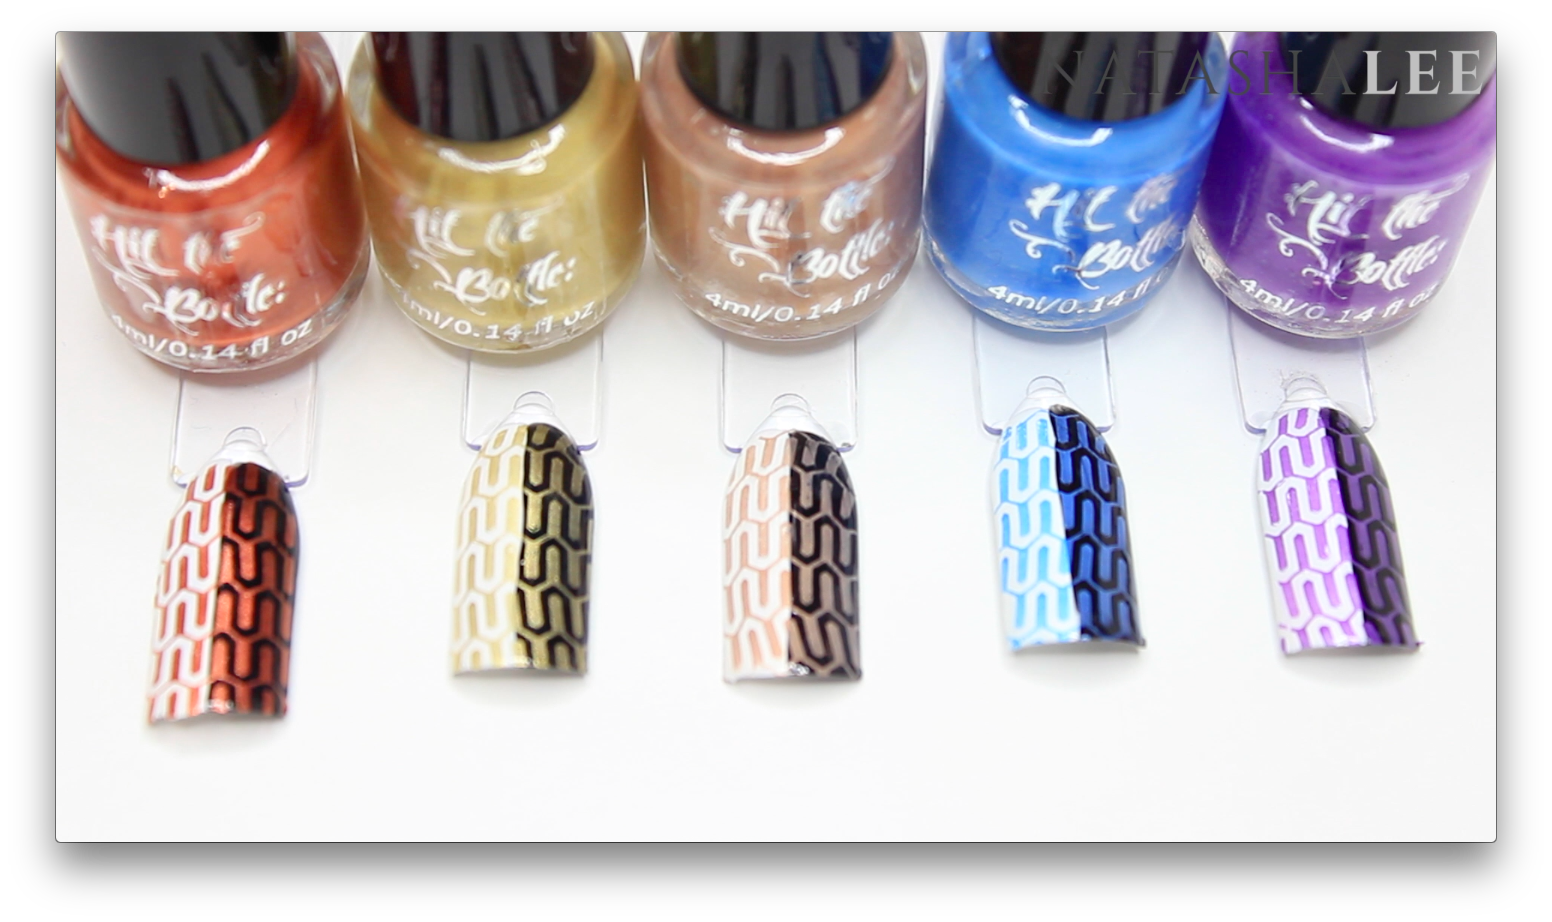 hit the bottle stamping polish